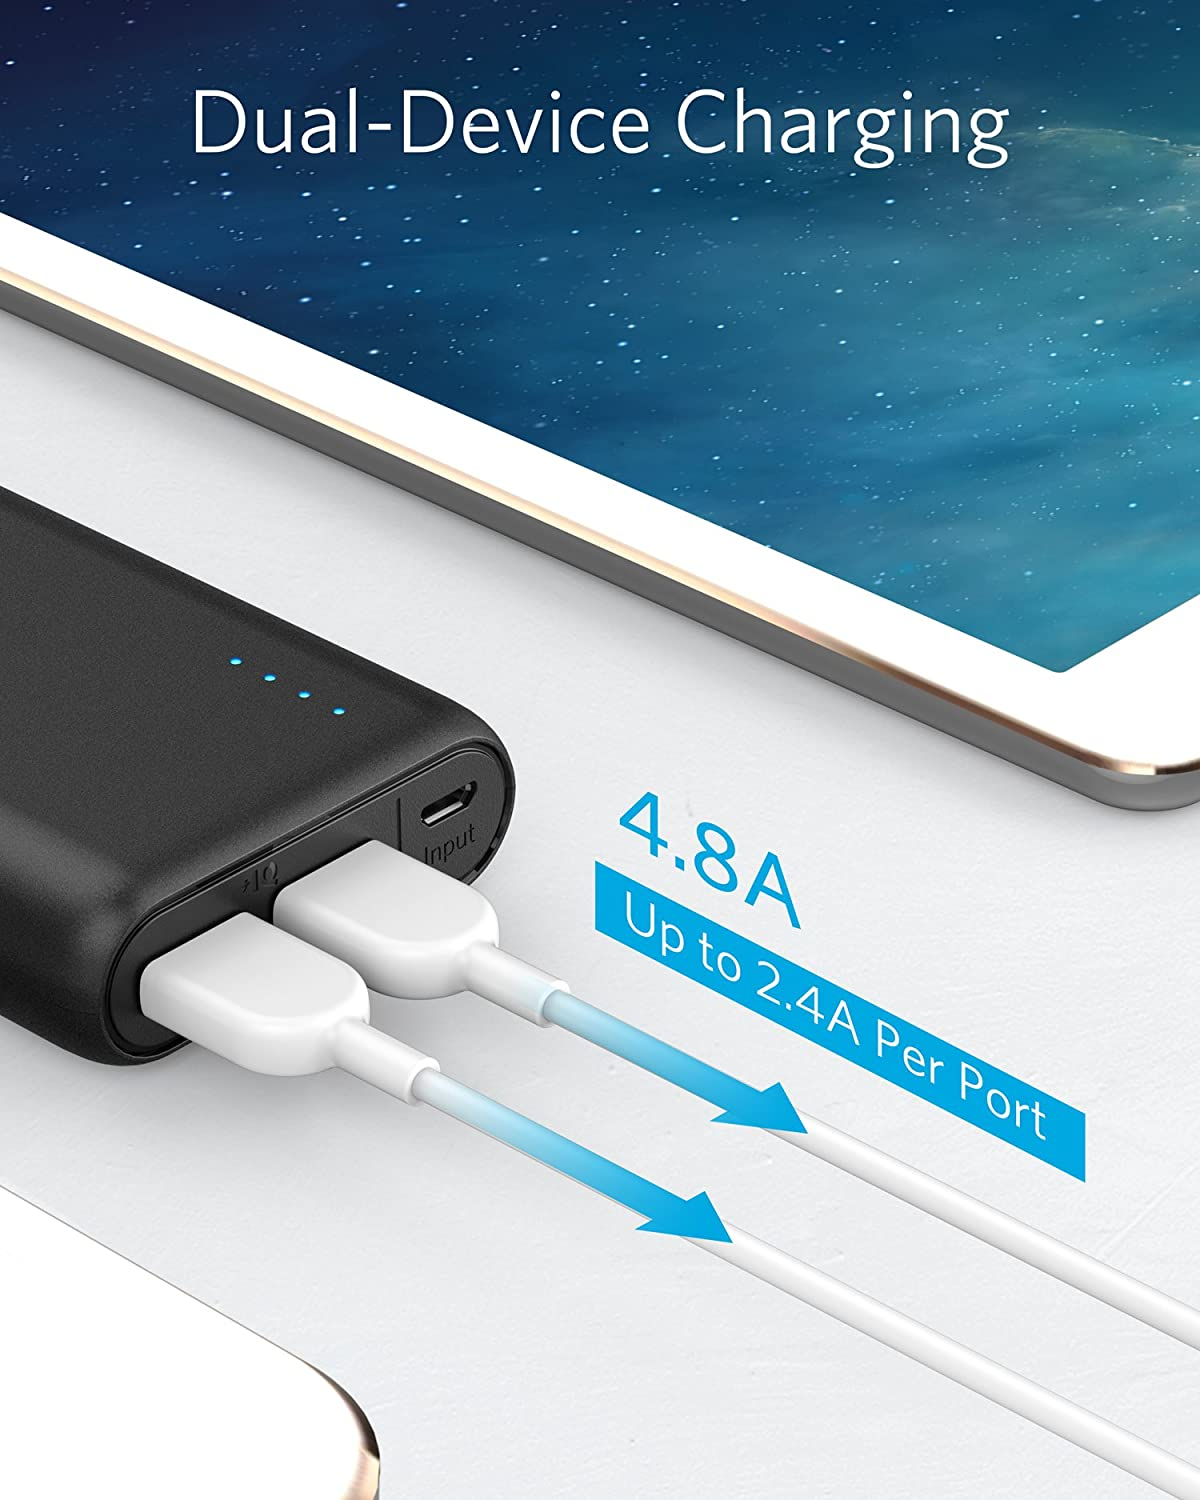 Portable Charger Anker PowerCore 20100mAh  Ultra High Capacity Power Bank with 48A Output and